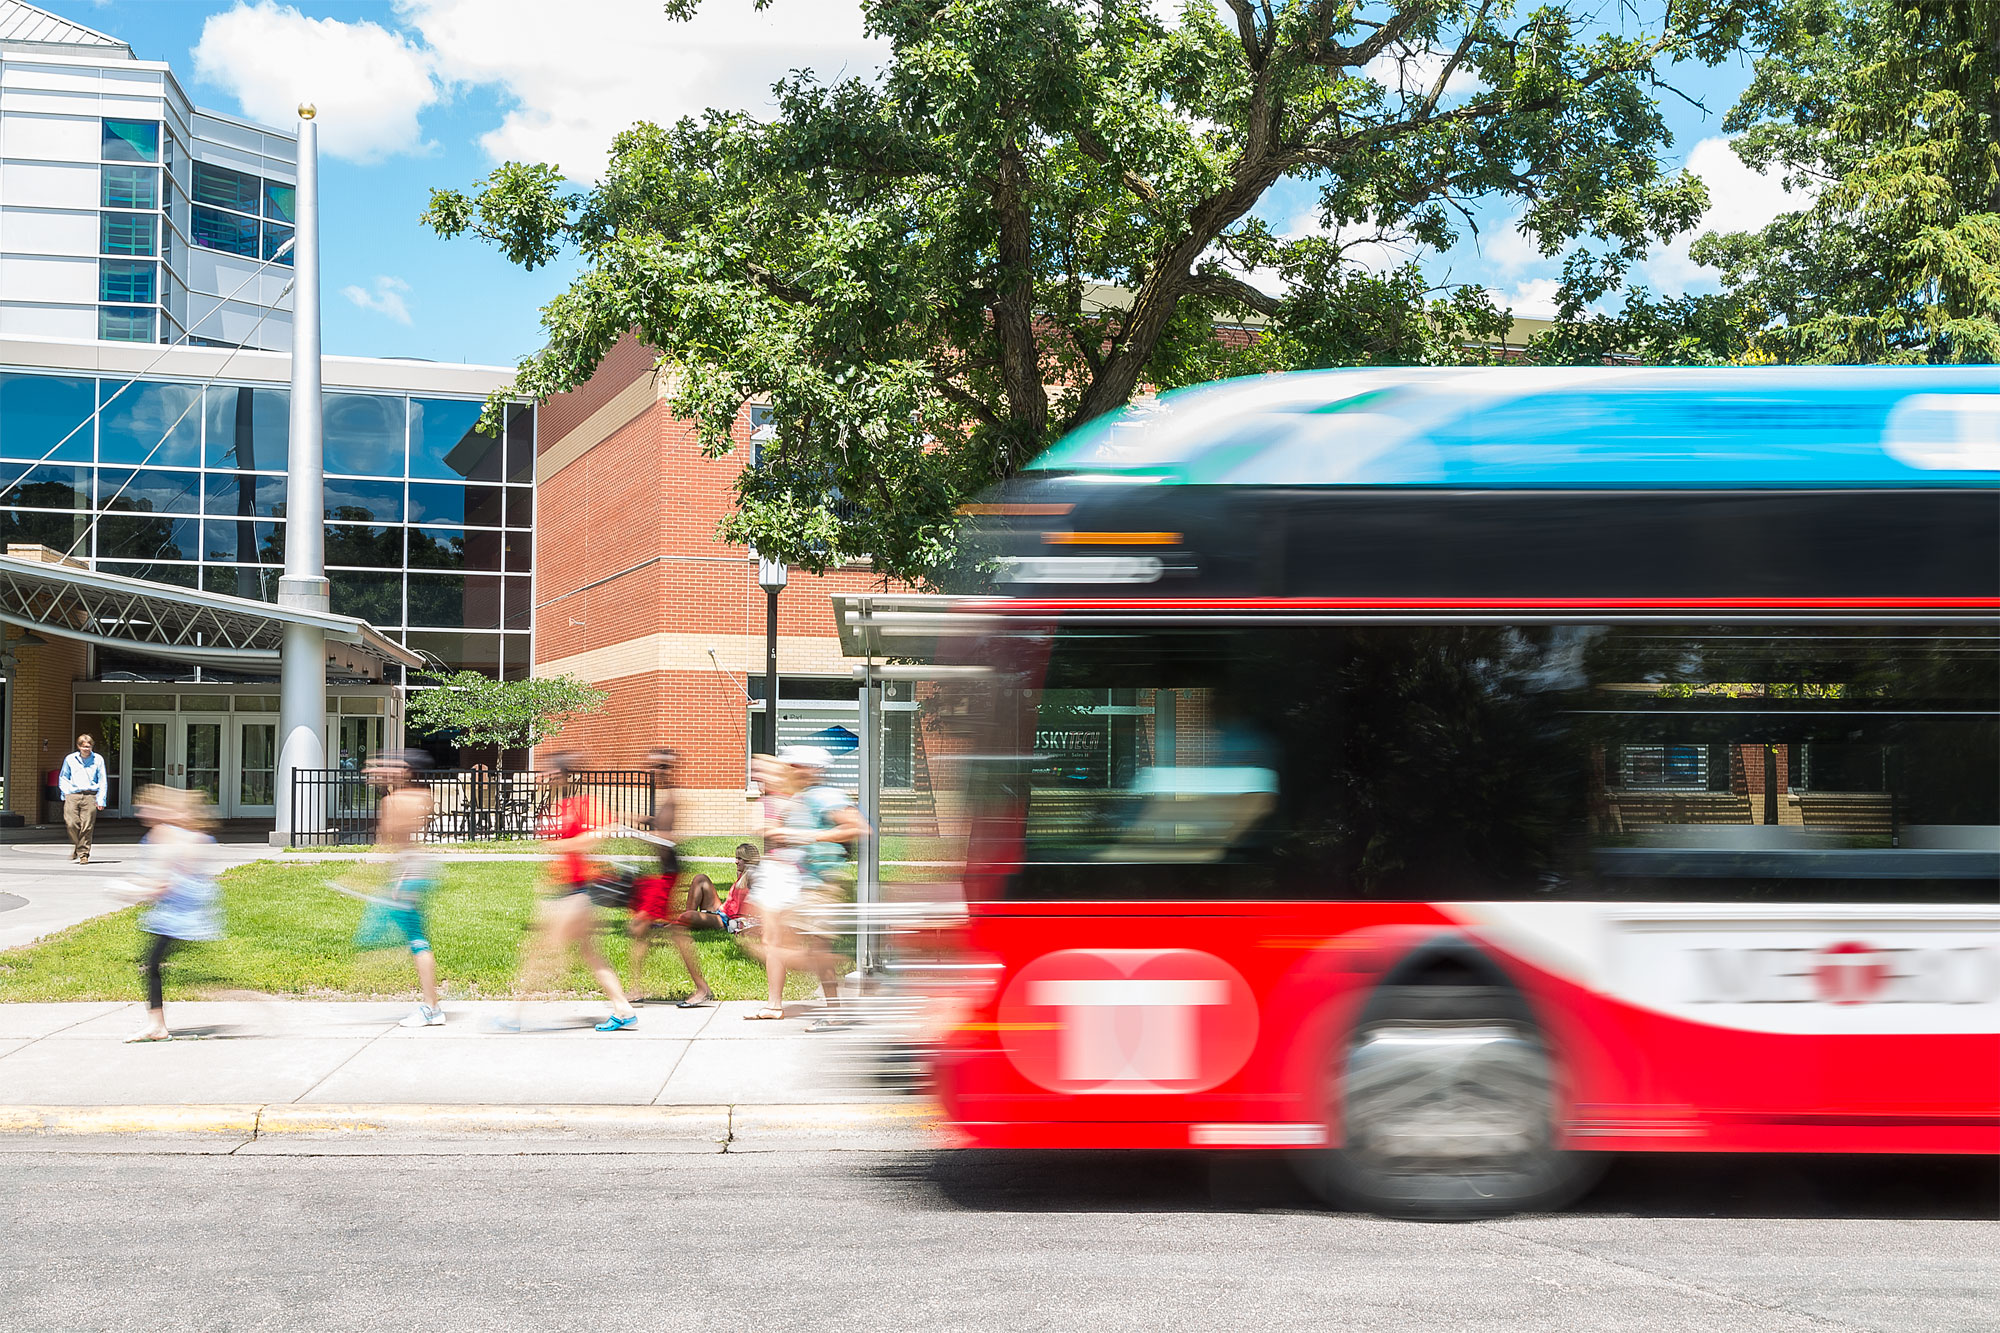 IMAGE: Metro Bus Arriving at St. Cloud State University